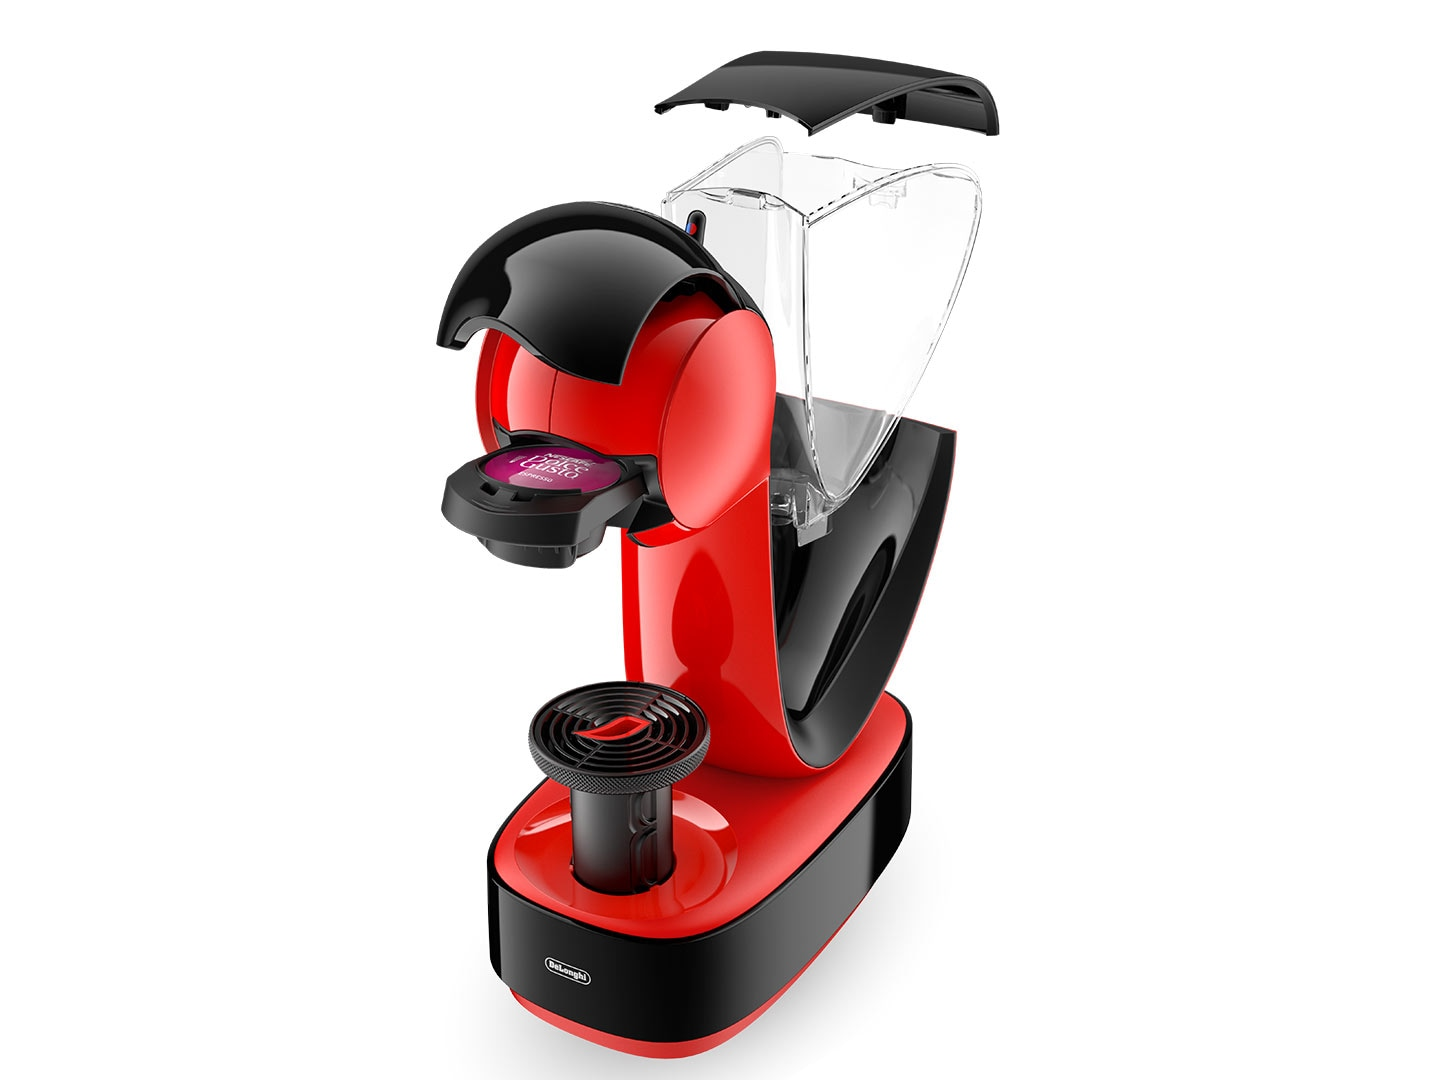 Cafetera capsulas dolce gusto infinissima EDG260